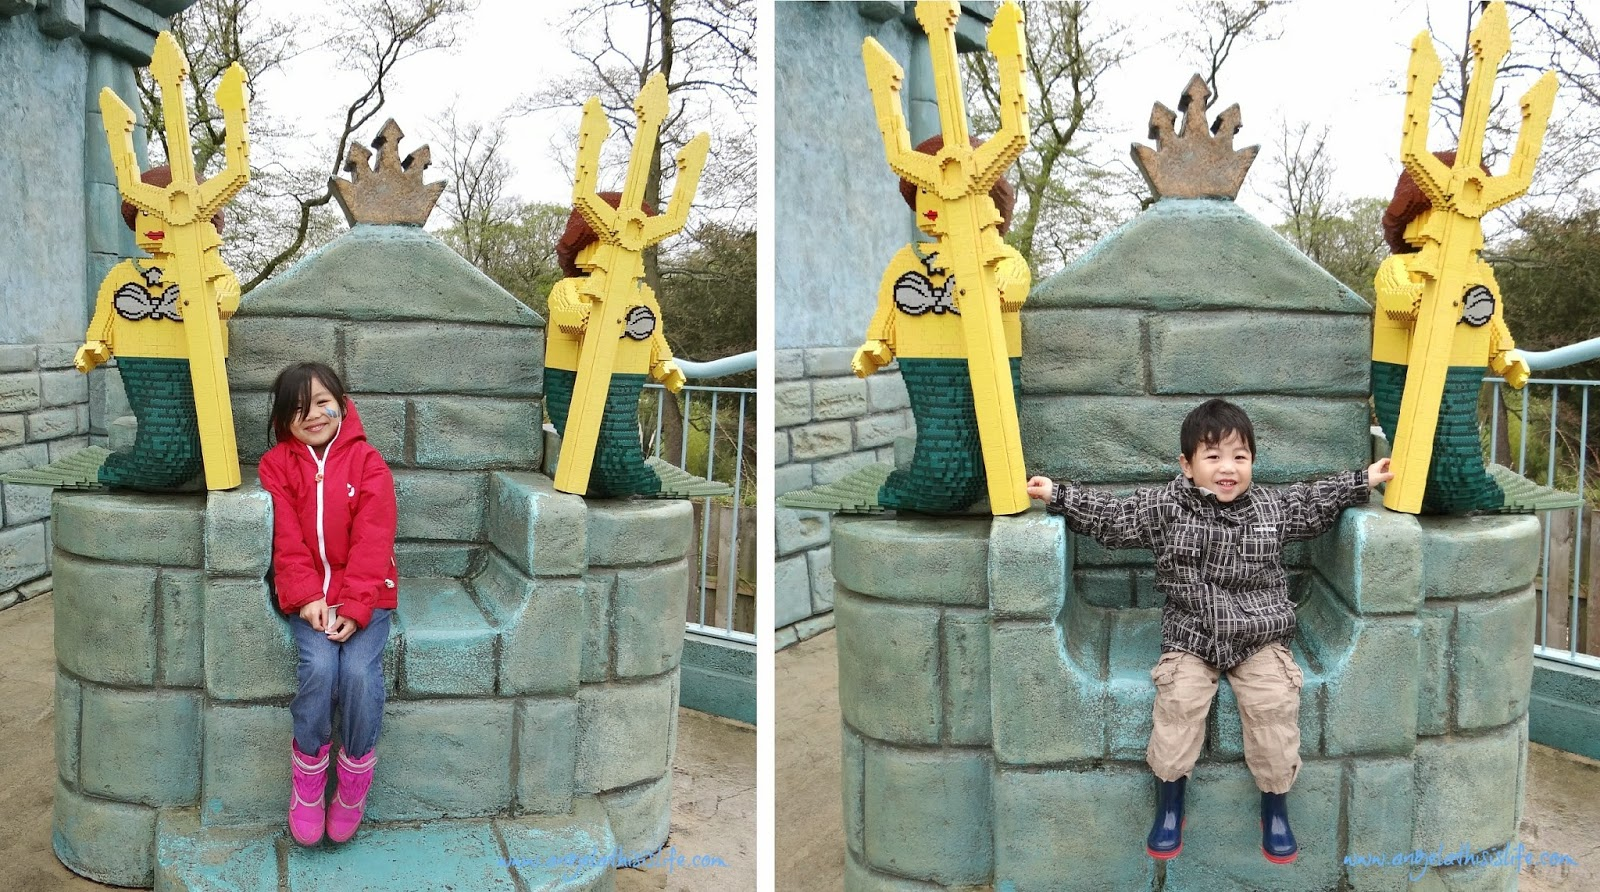 Legoland Windsor 2014, Legoland Windsor Easter, Legoland Windsor Atlantis